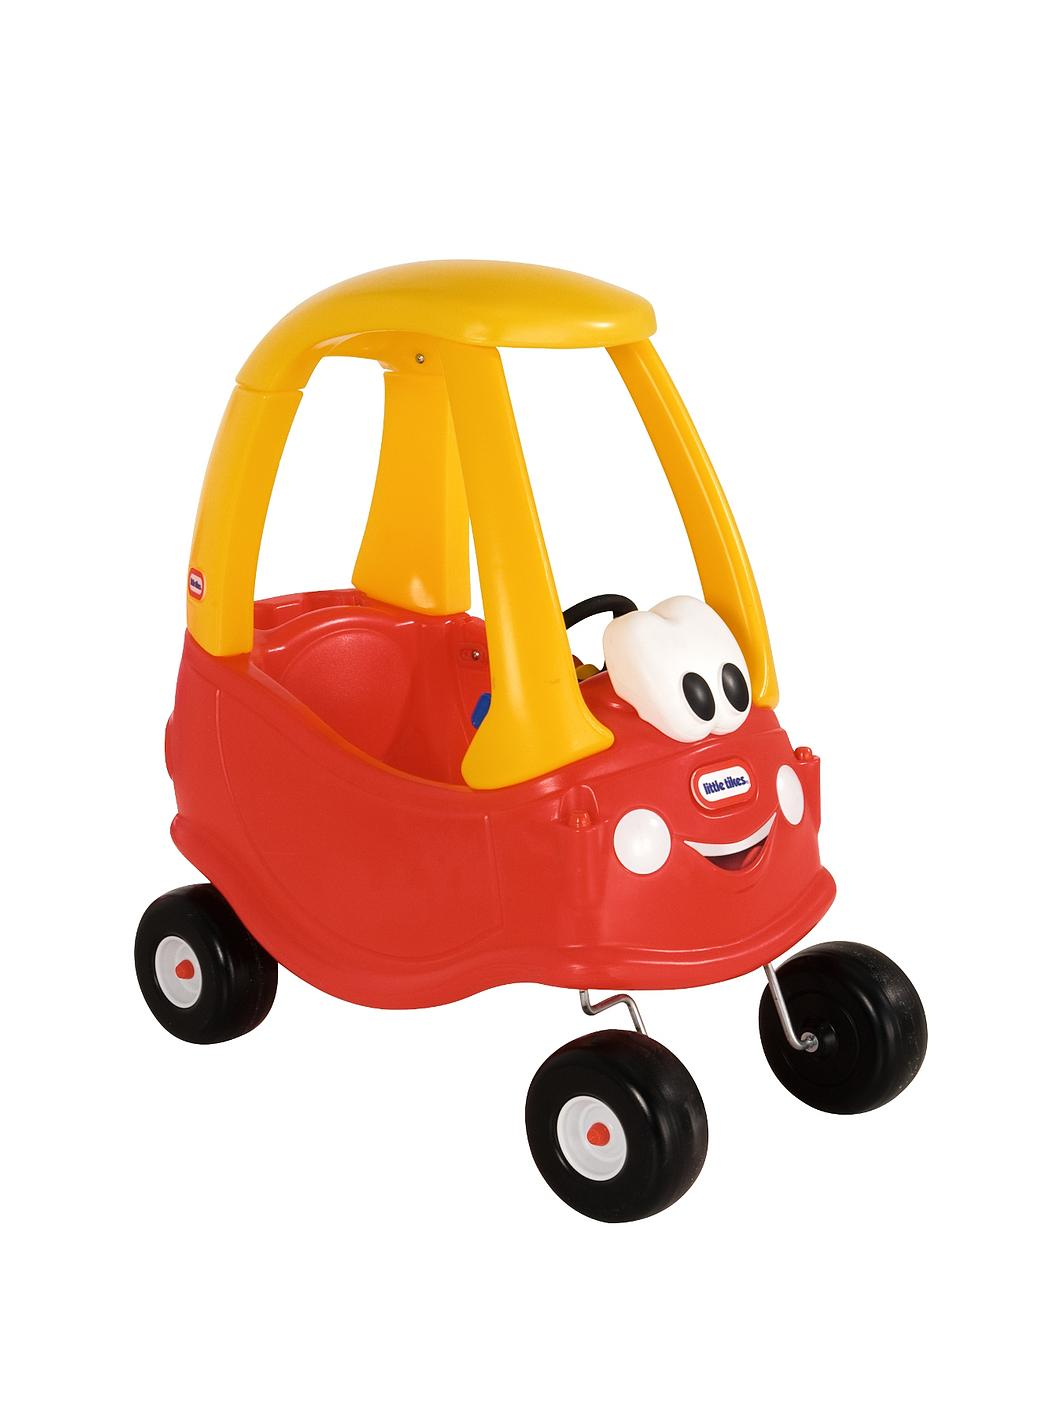 Little Tikes Cozy Coupe 30th Anniversary Edition Toysrus Auto Design #C28E09